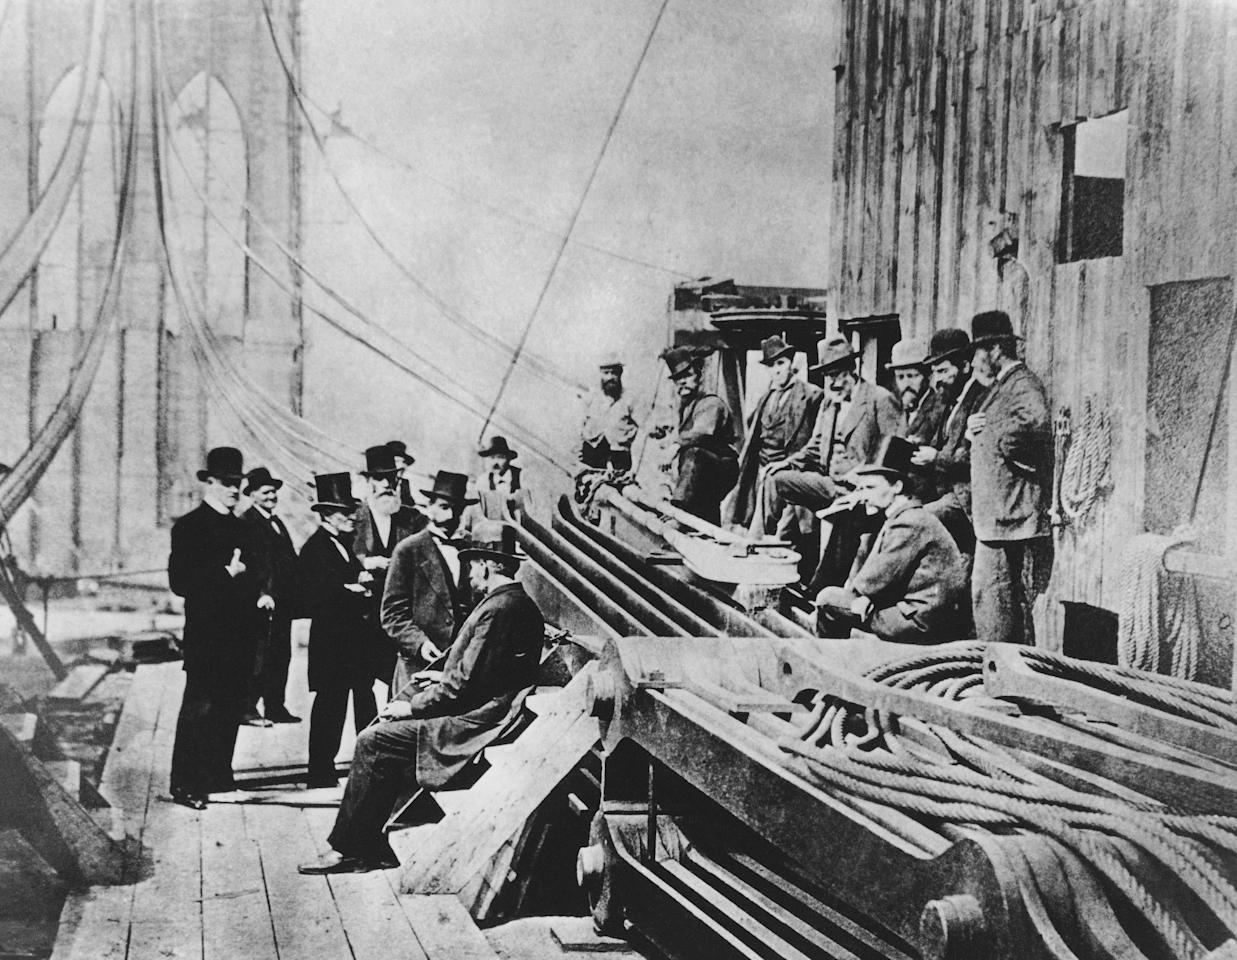 Officers of the New York and Brooklyn Corporation, and workmen, inspect the cable anchorage on the Brooklyn side of the Brooklyn Bridge during construction, Oct. 1878. (AP Photo)